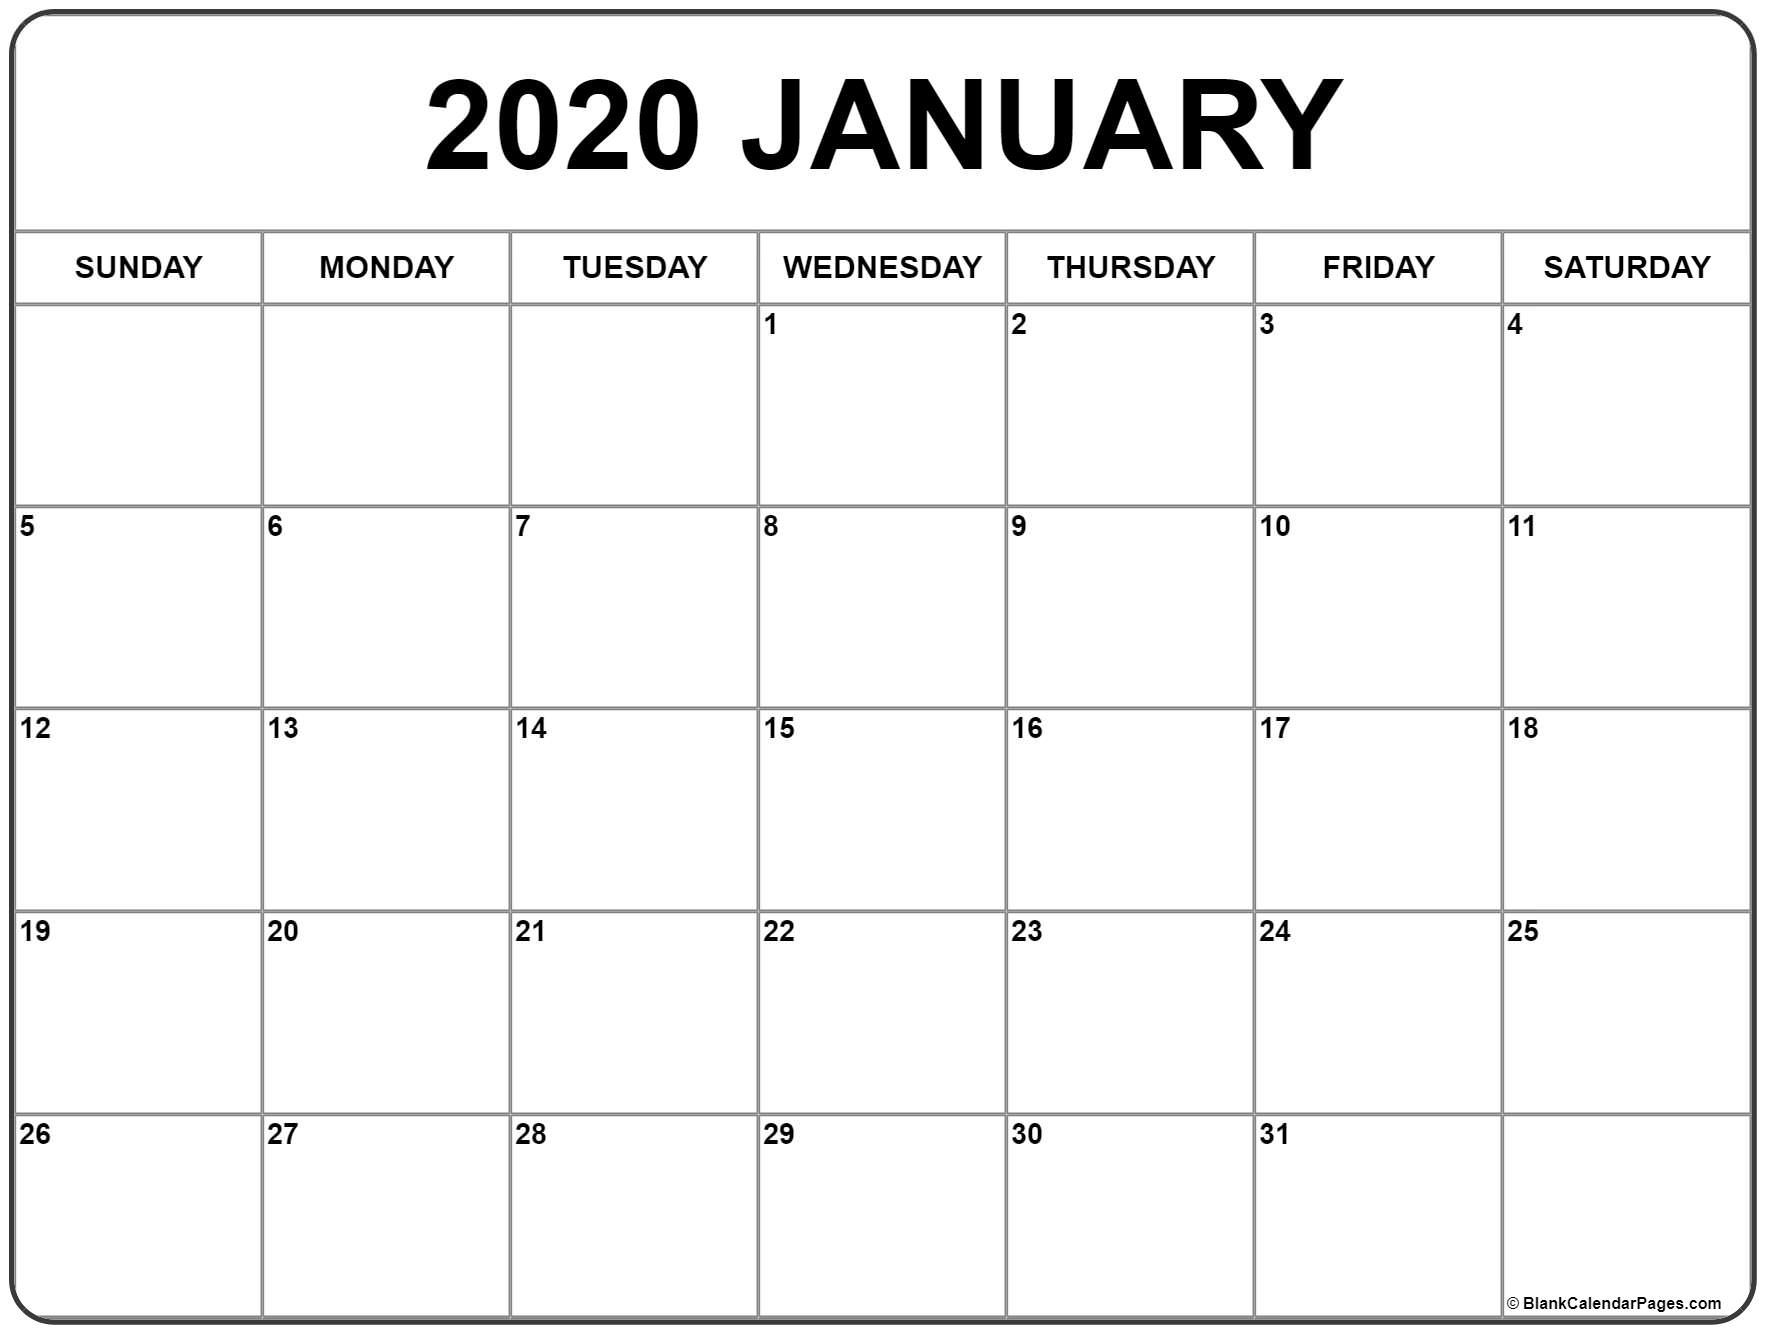 January 2020 Calendar | Free Printable Monthly Calendars regarding Print Free Calendars 2020Without Downloading